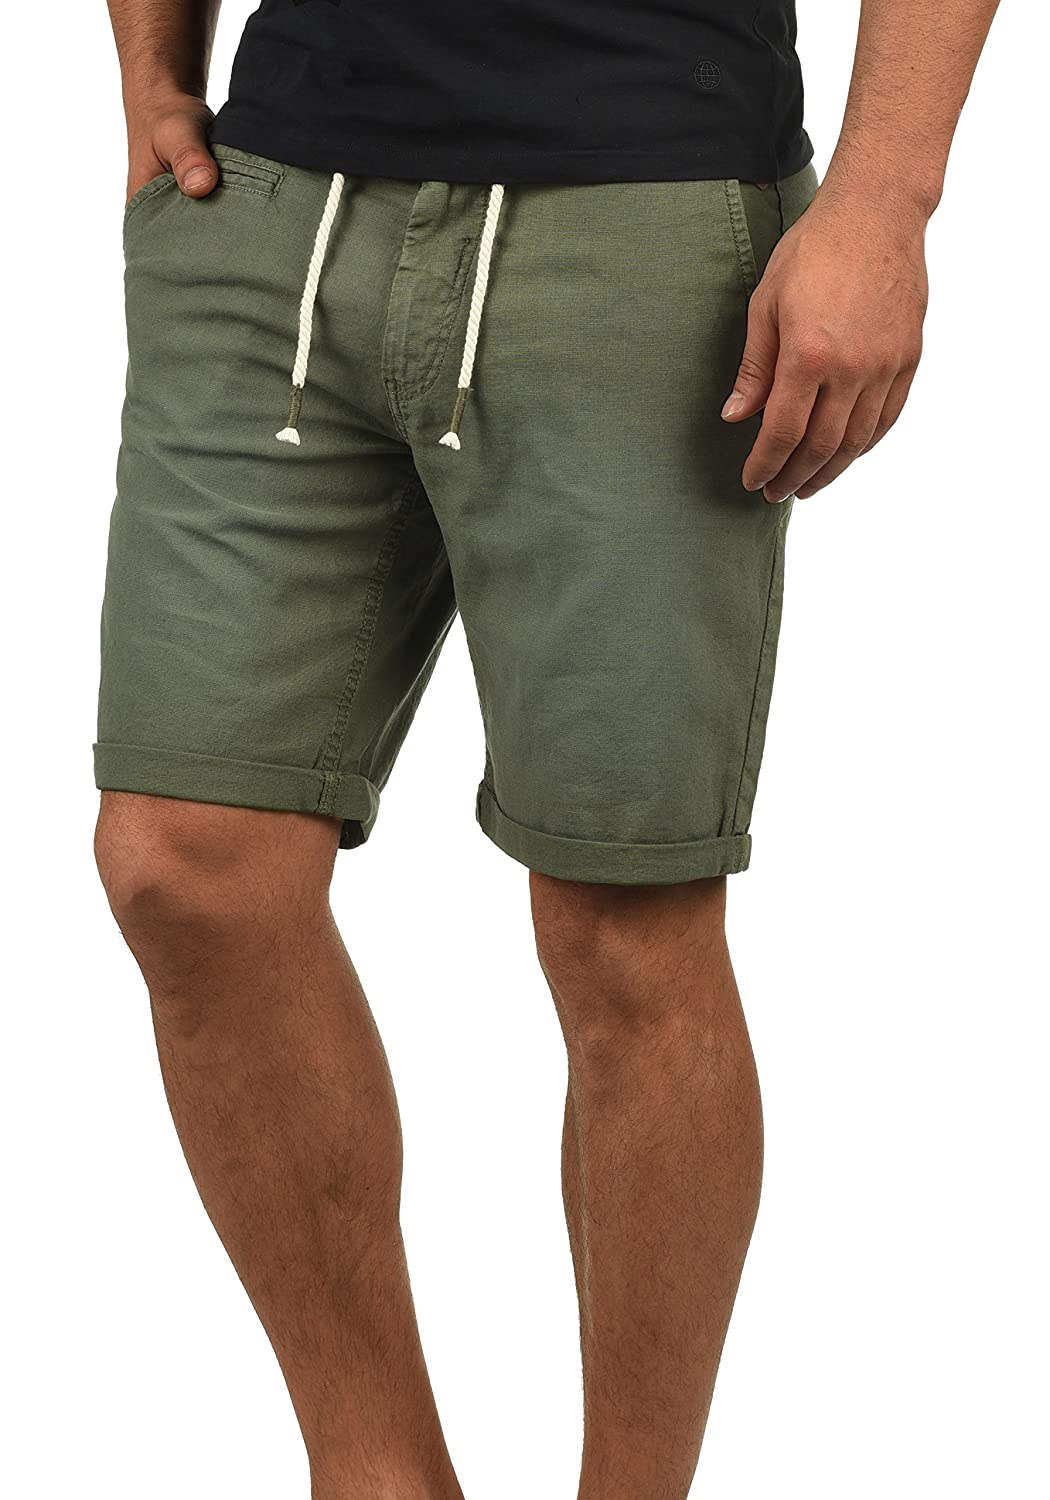 Fit Blend Lias Pantaloncini di Lino Shorts Bermuda da Uomo Regular